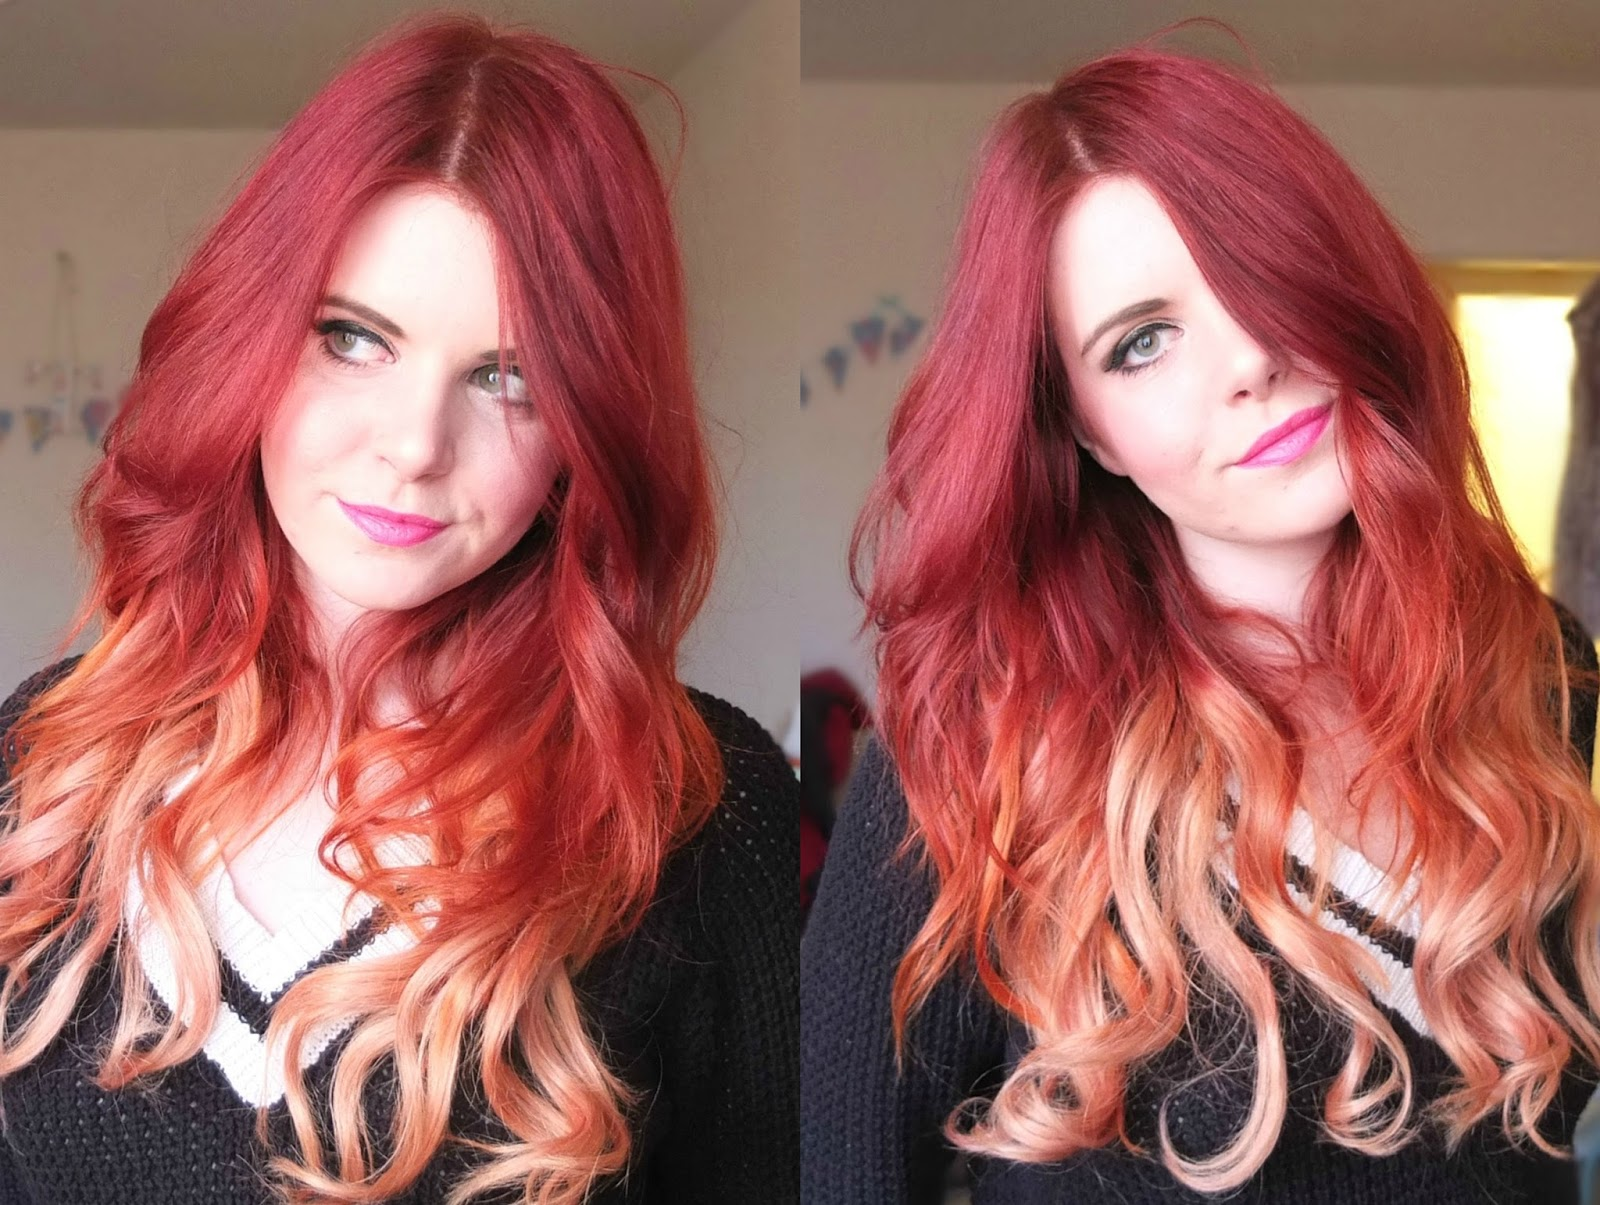 dirty looks hair extensions review for red ombre hair